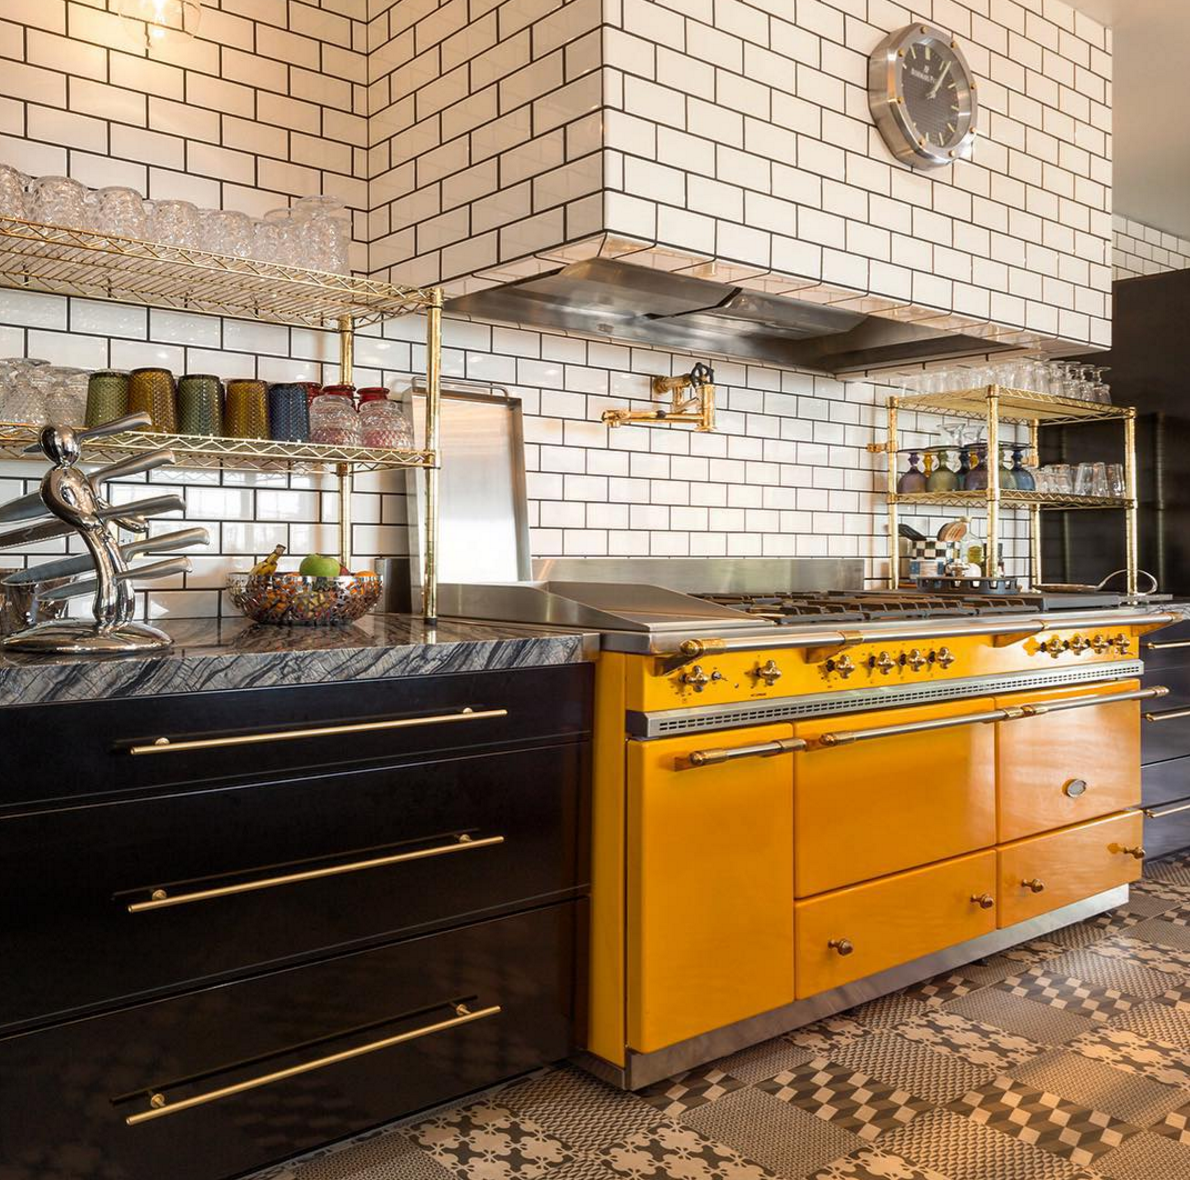 The Quintessential Industrial Chic Kitchen Moya Living X Style Life Decor Powdercoated Industrial Chic Kitchen Steel Kitchen Cabinets Kitchen Cabinet Design